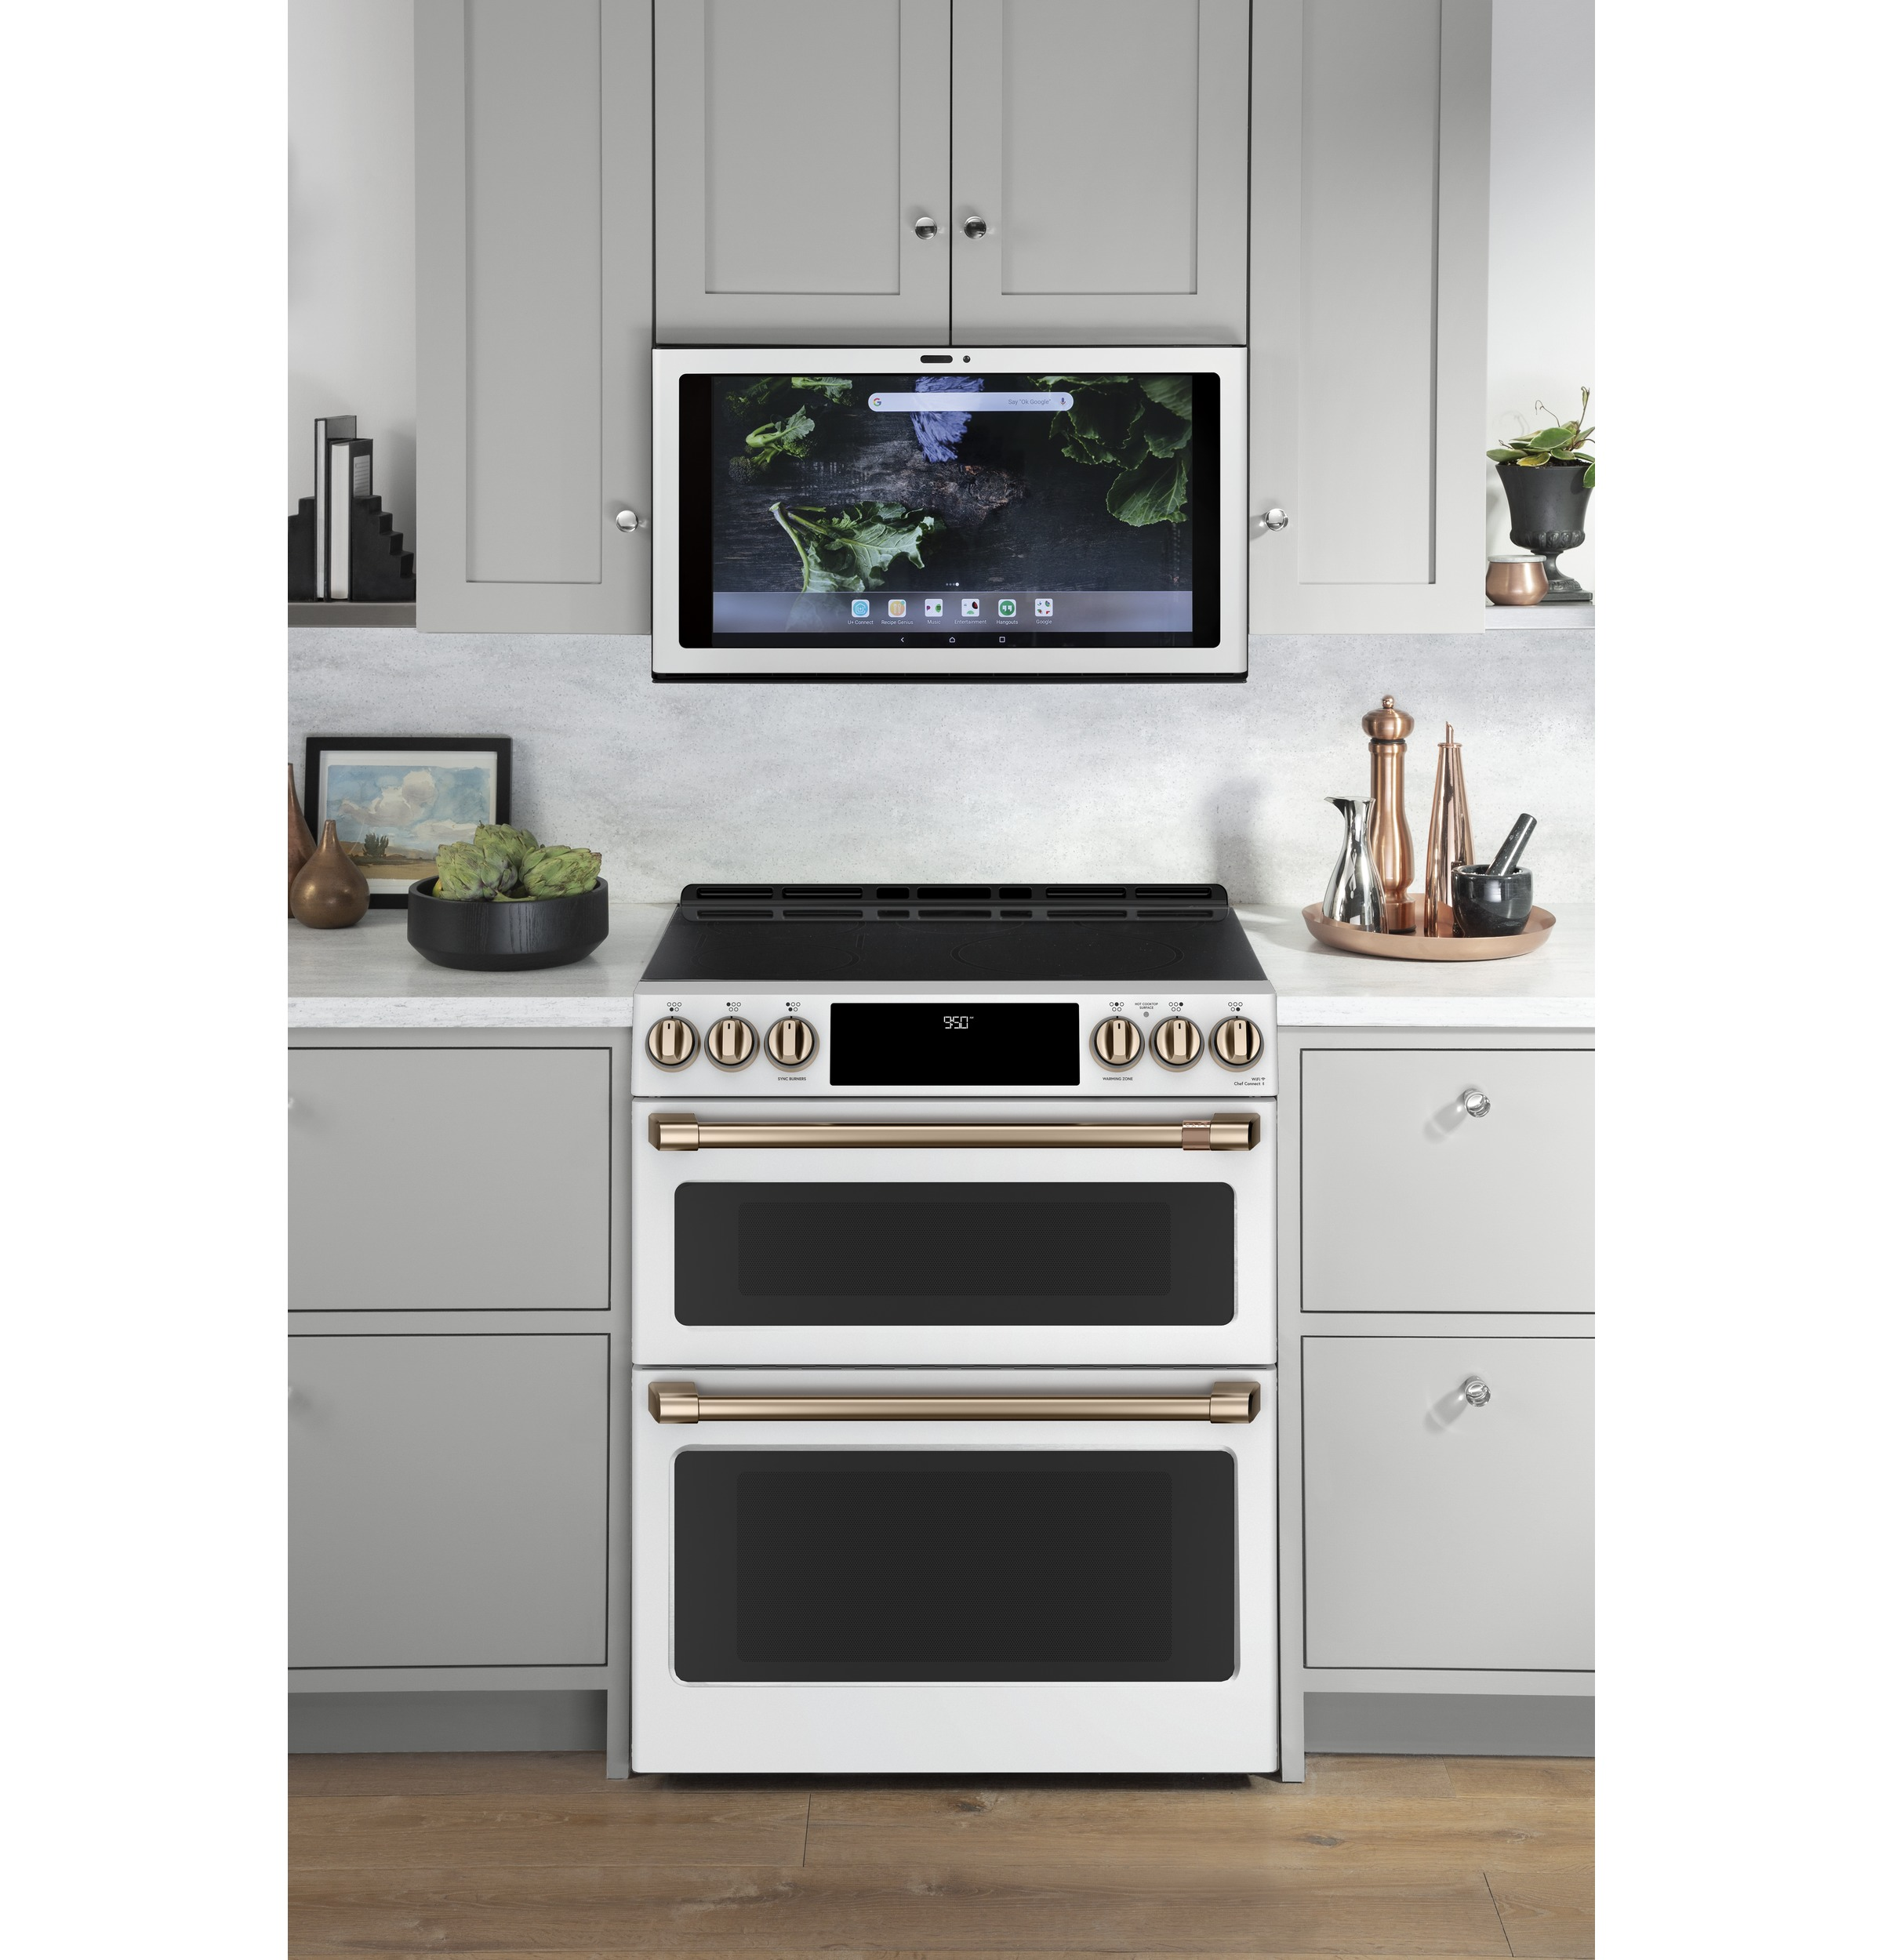 Model: UVH13014MWM | Cafe Kitchen Hub  Smart Home Center